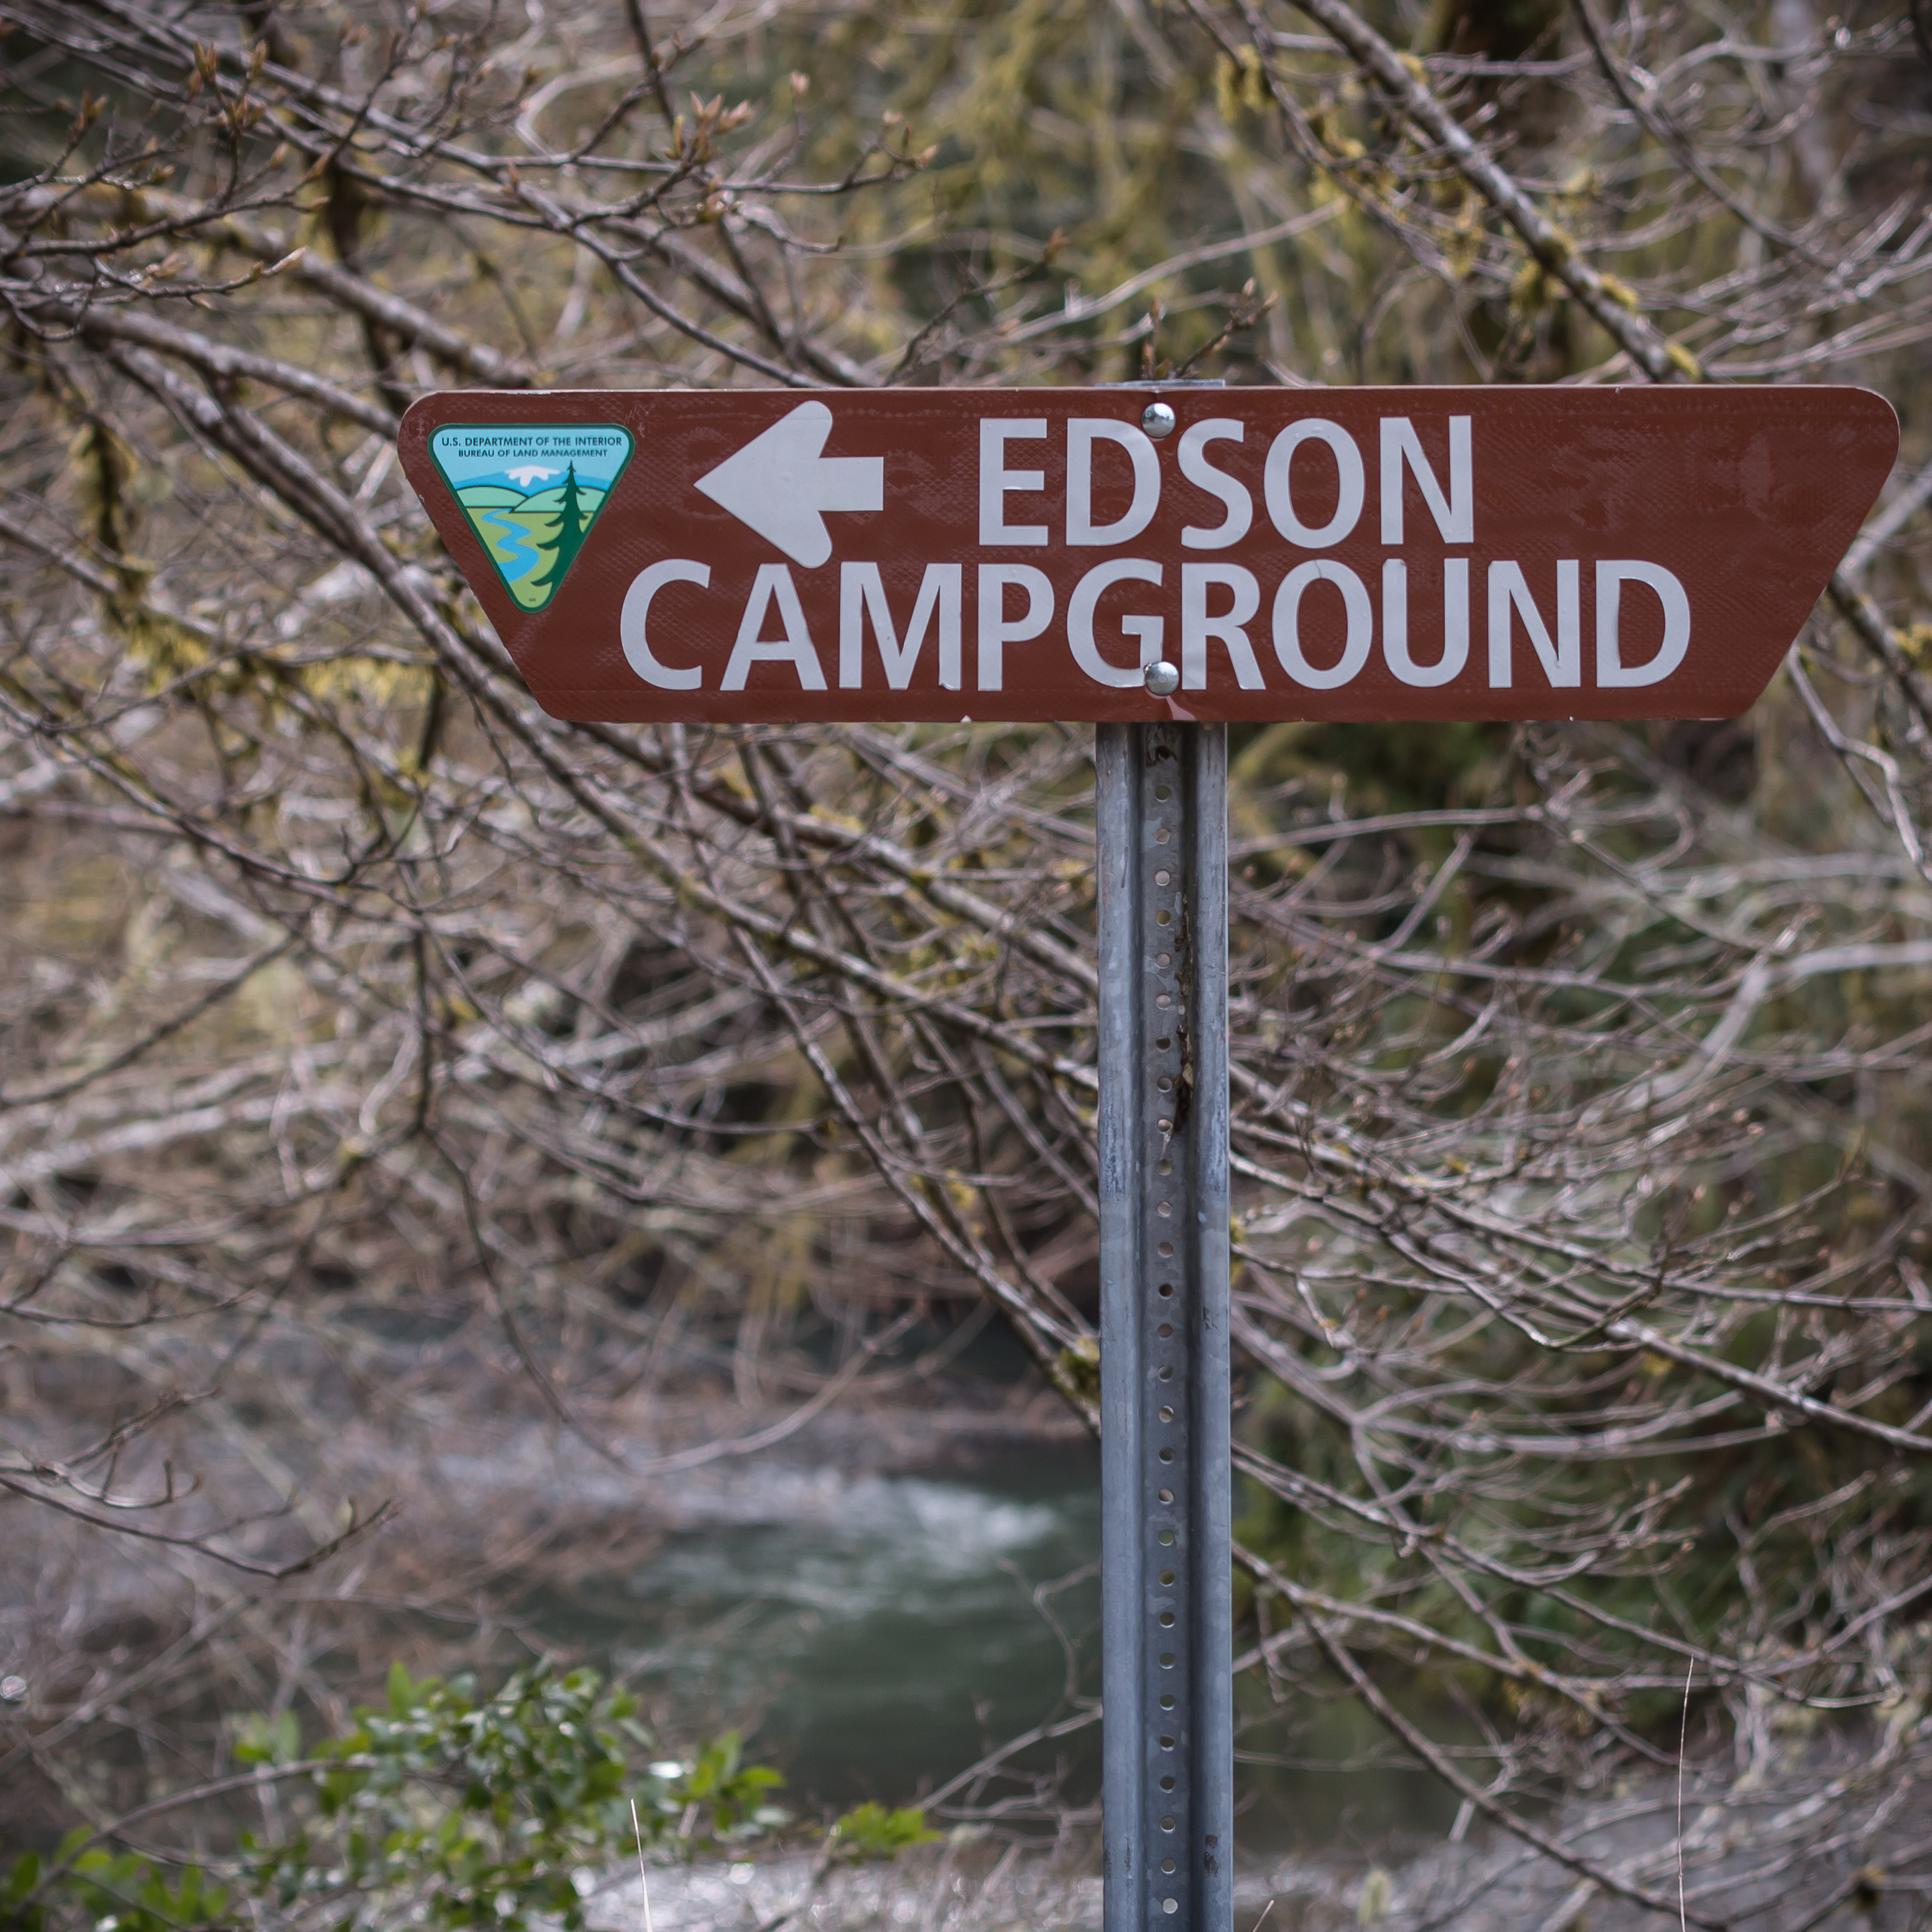 Recreation Site. The rivers, streams, and forests that surround Edson Creek Recreation Site are home to many different fish and wildlife. Bear, cougar, and